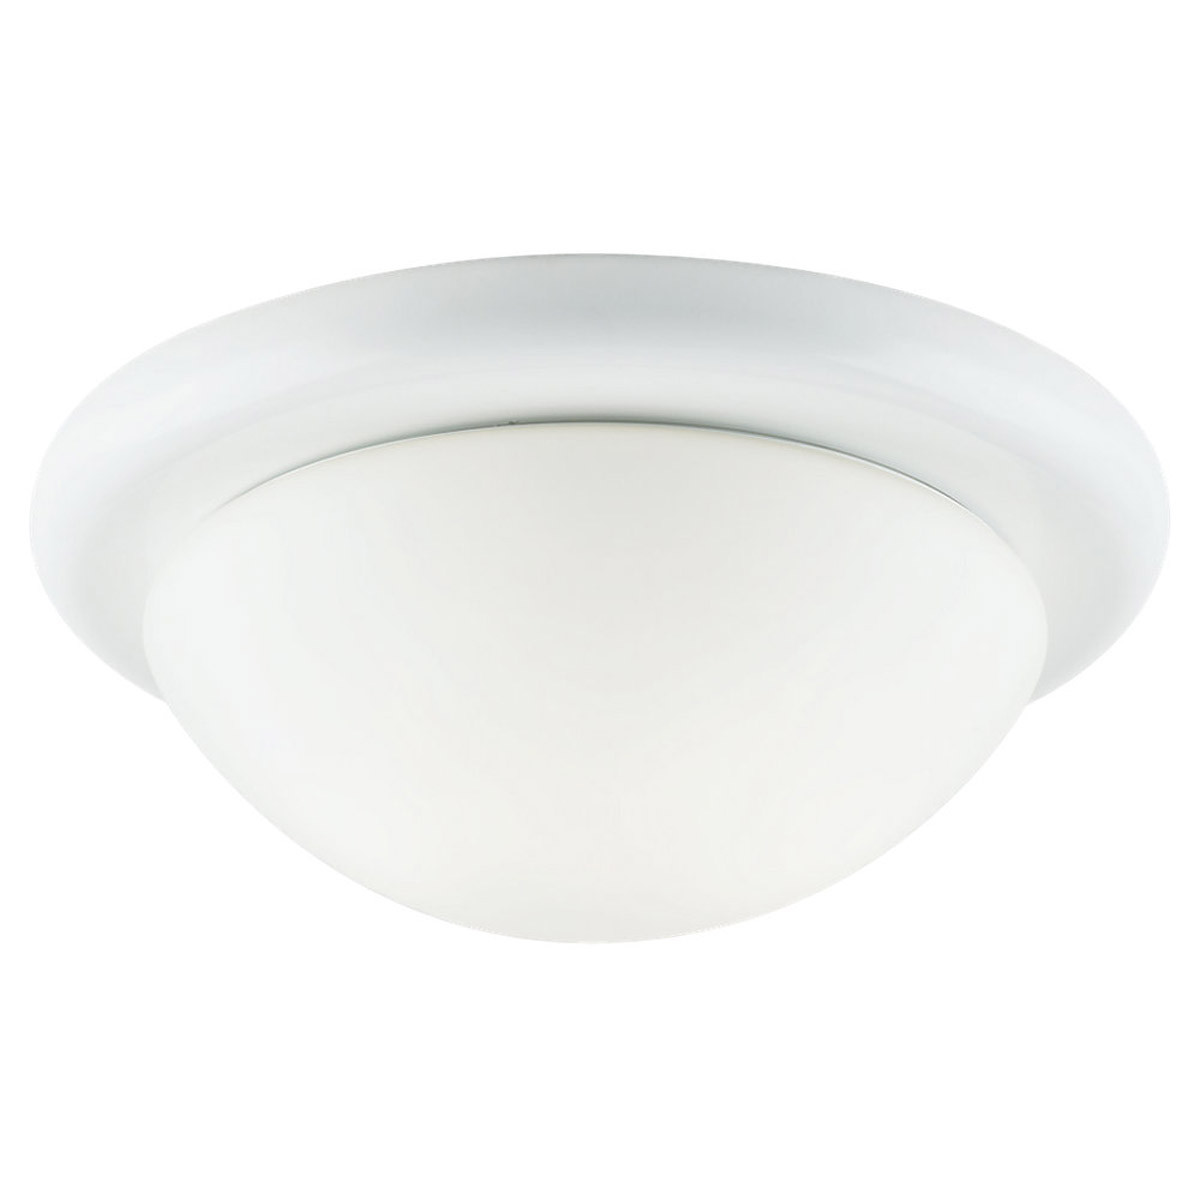 Sea Gull Lighting Signature 3 Light Flush Mount in White 53074-15